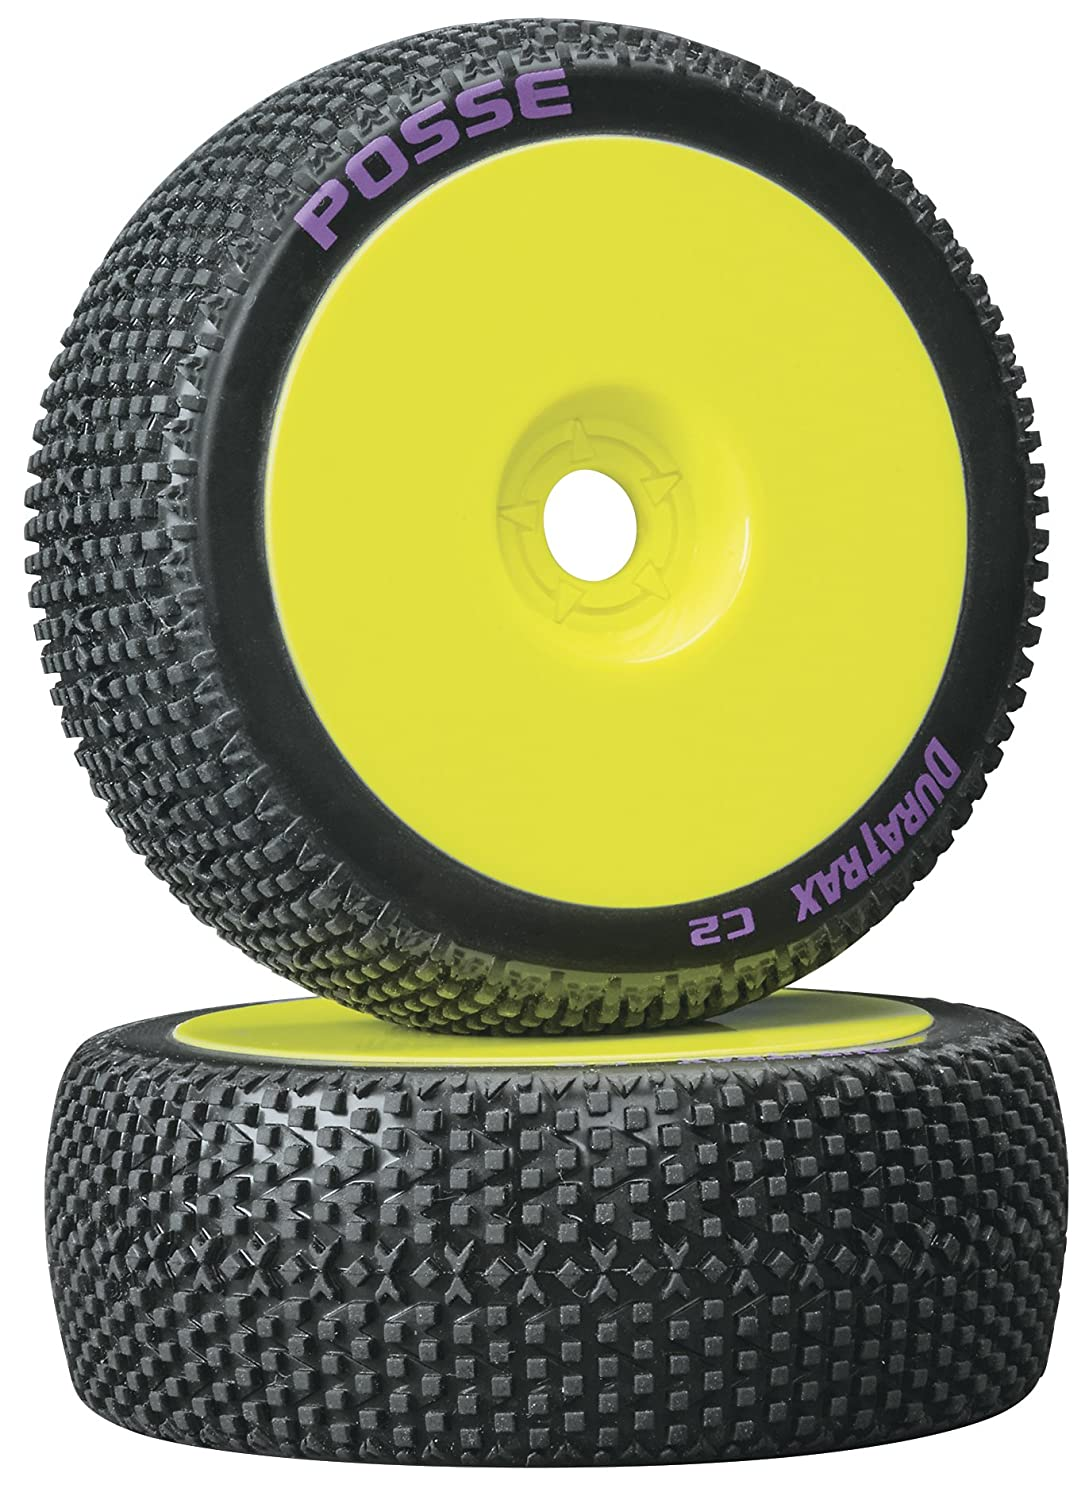 Duratrax Bandito 1:8 Scale RC Buggy Tires with Foam Inserts Set of 2 C3 Super Soft Compound Mounted on Black Wheels